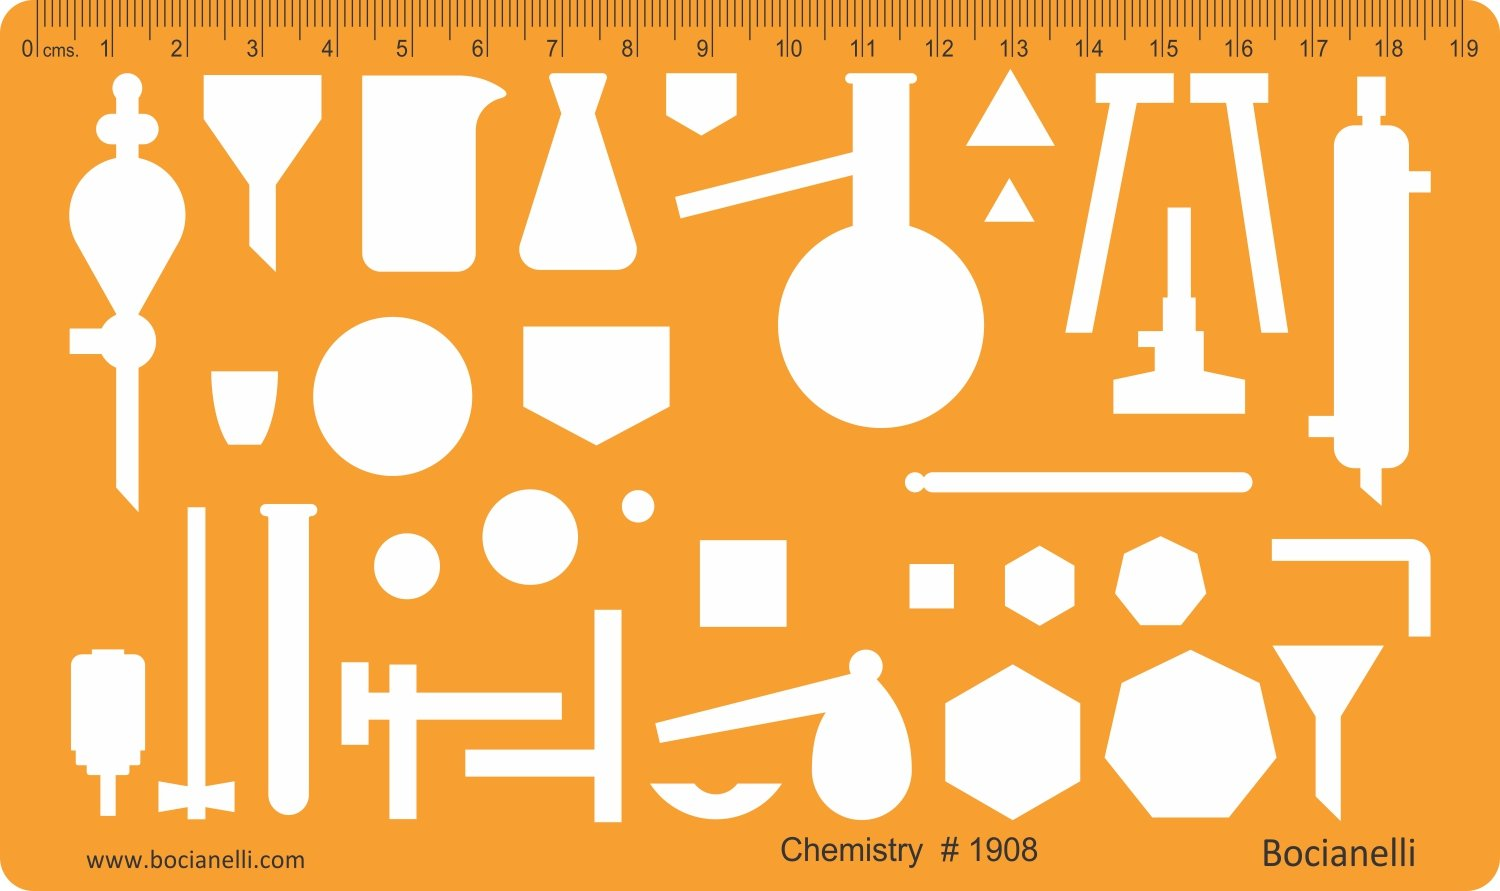 Amazon chemistry chemical engineering laboratory lab amazon chemistry chemical engineering laboratory lab equipment symbols drawing template stencil arts crafts sewing buycottarizona Images